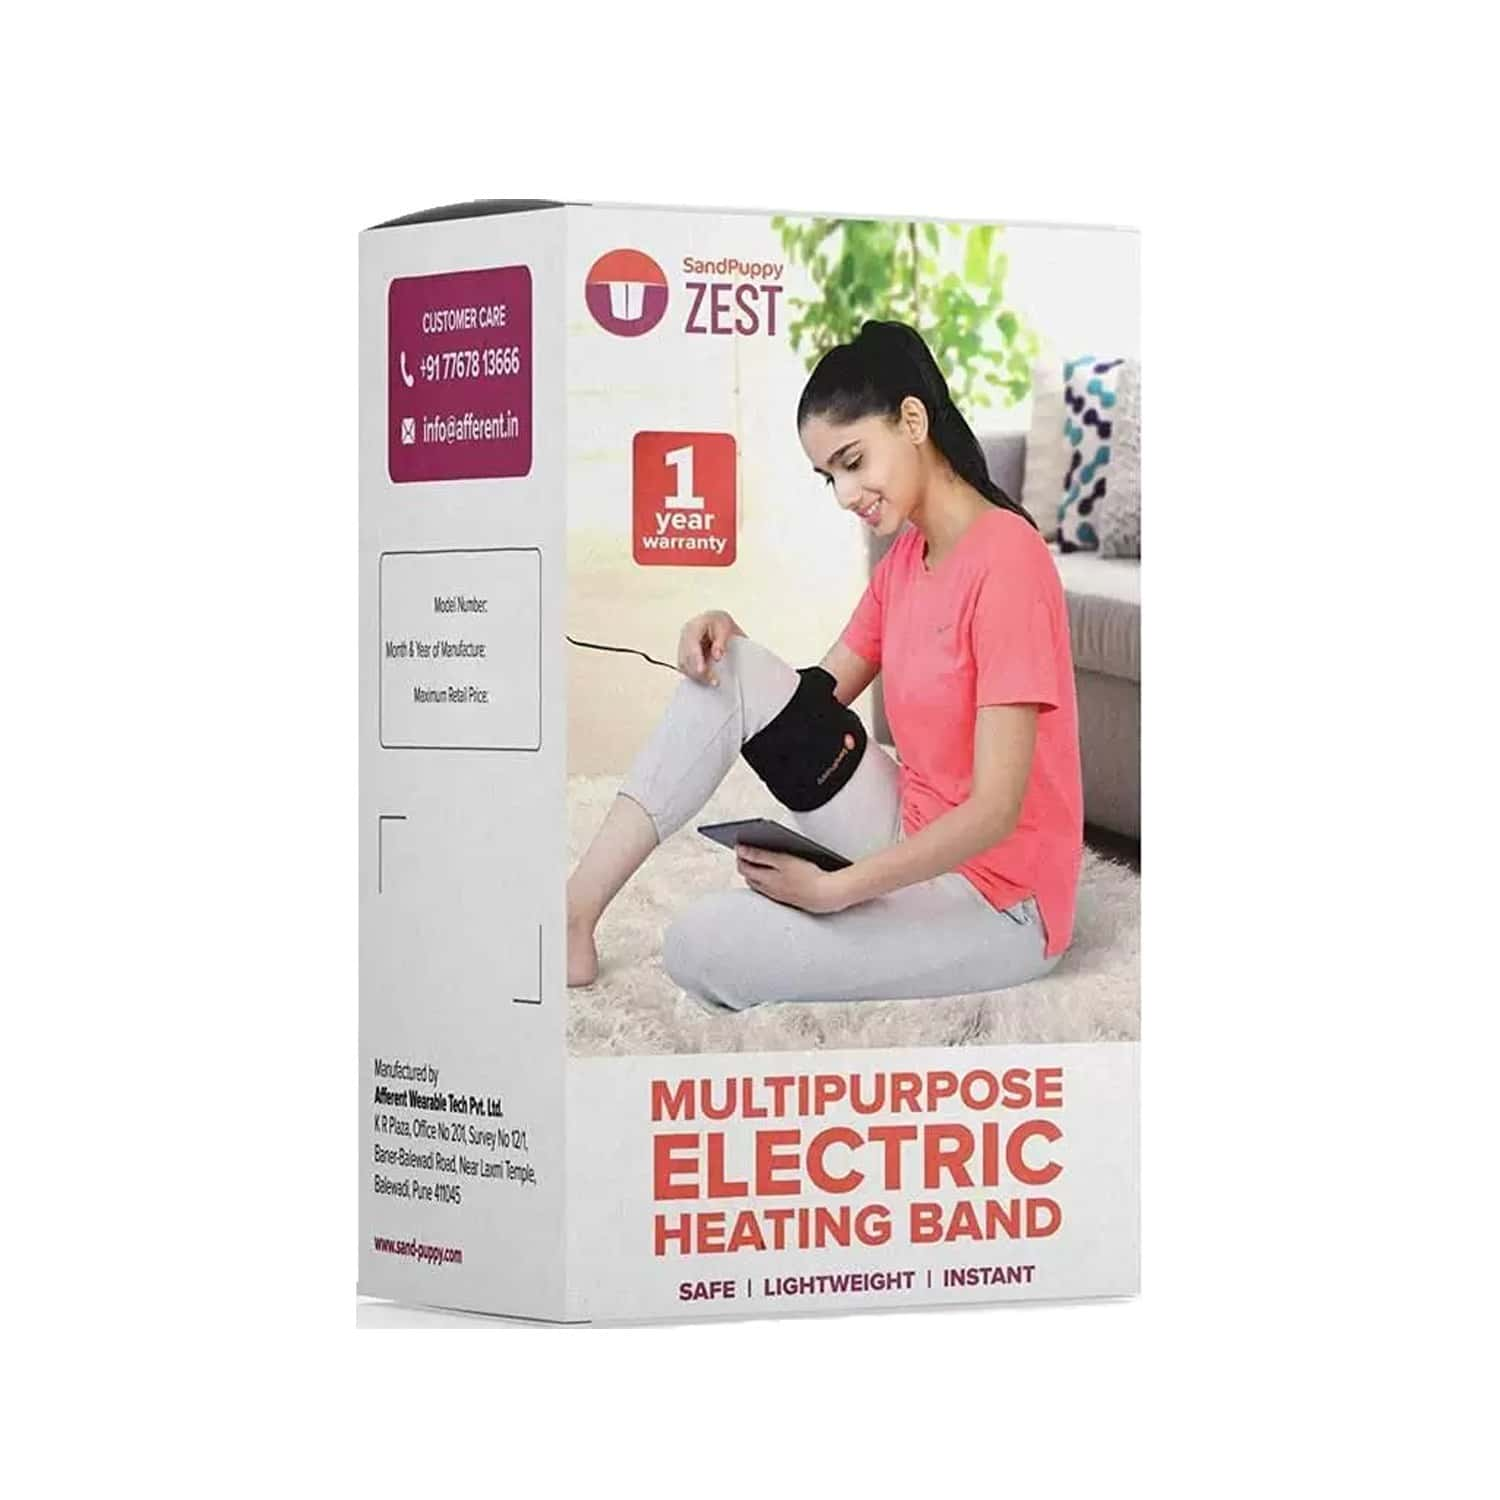 Sandpuppy Zest - New 5 In 1 Heating Pad For Pain Relief | Best For Hands And Legs Knee Elbow And Ankle